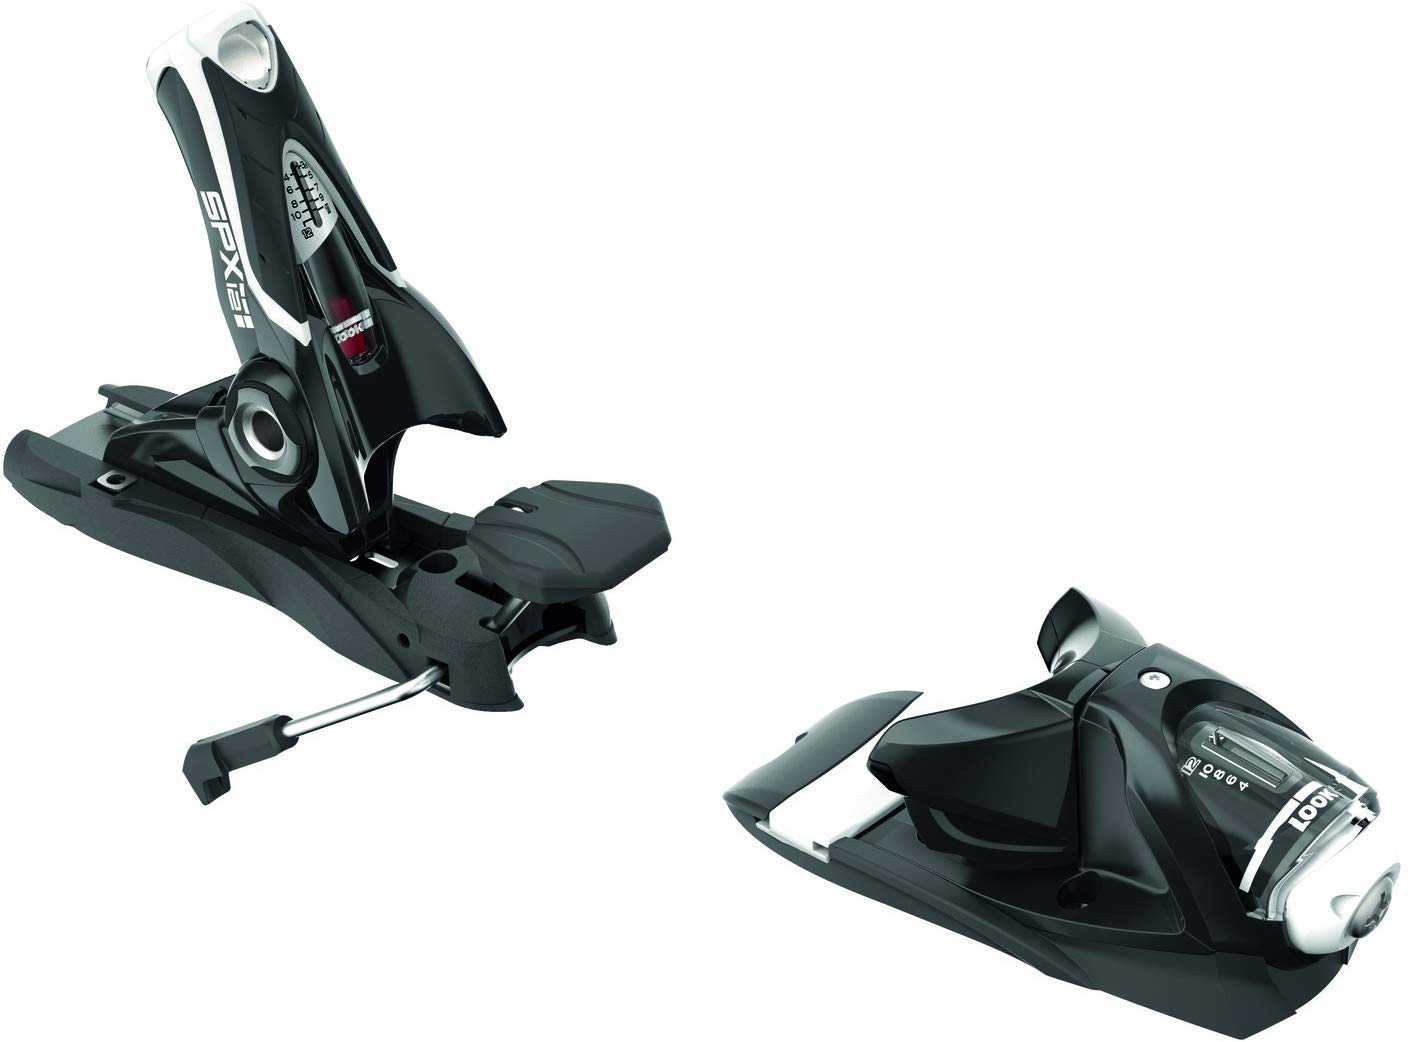 Top 10 Best Ski Bindings Reviews For All Mountains 2021 5